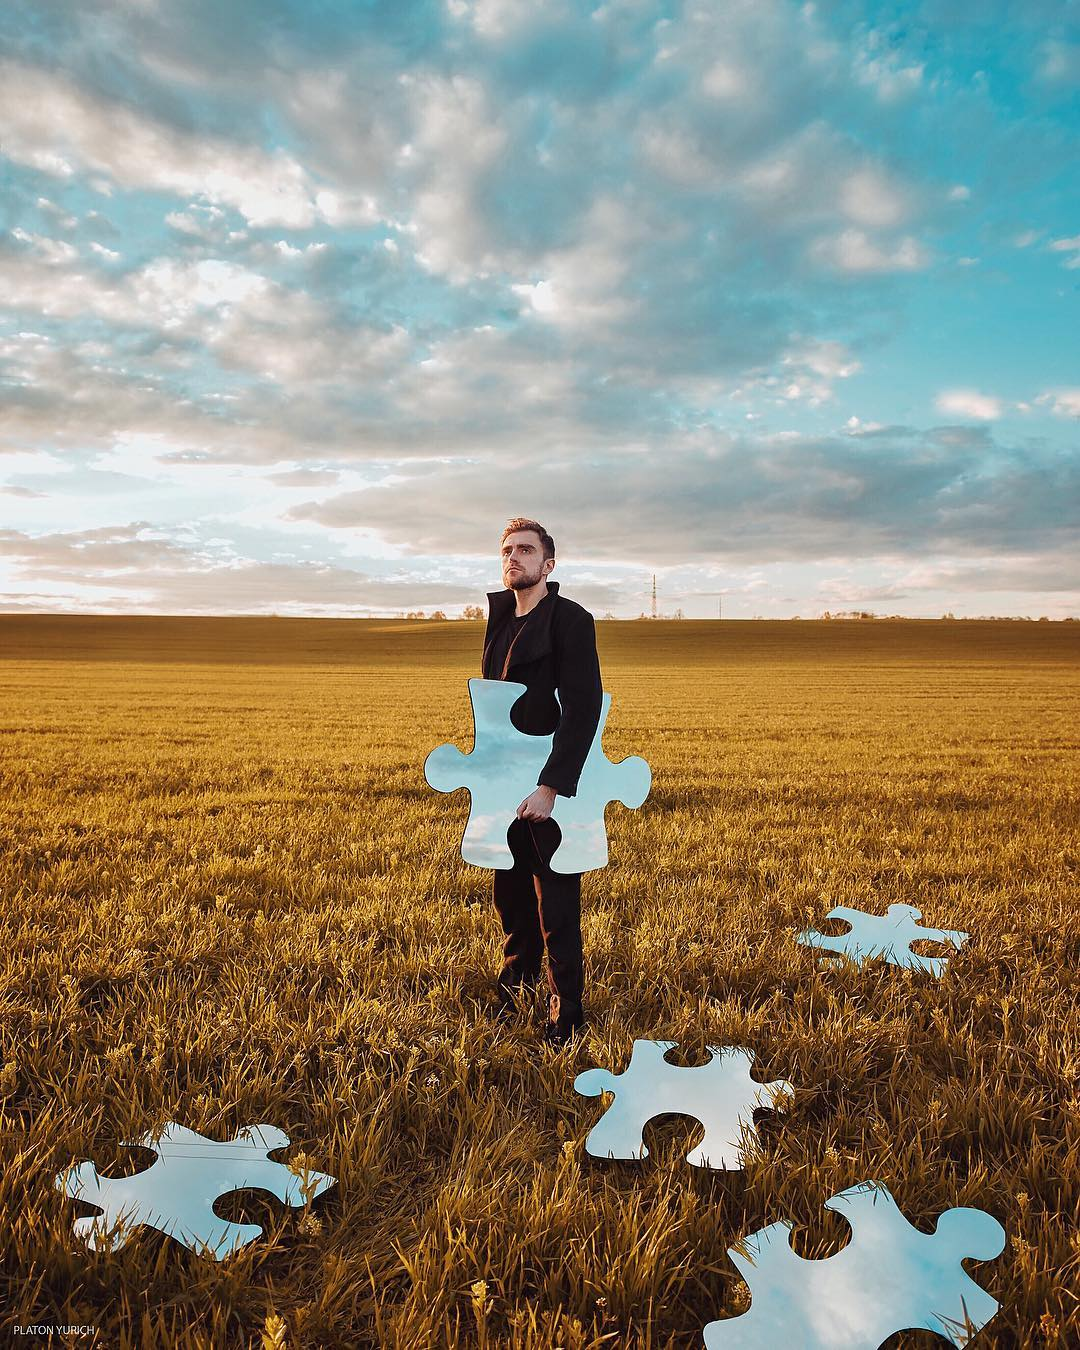 Surreal Conceptual Photography by Platon Yurich